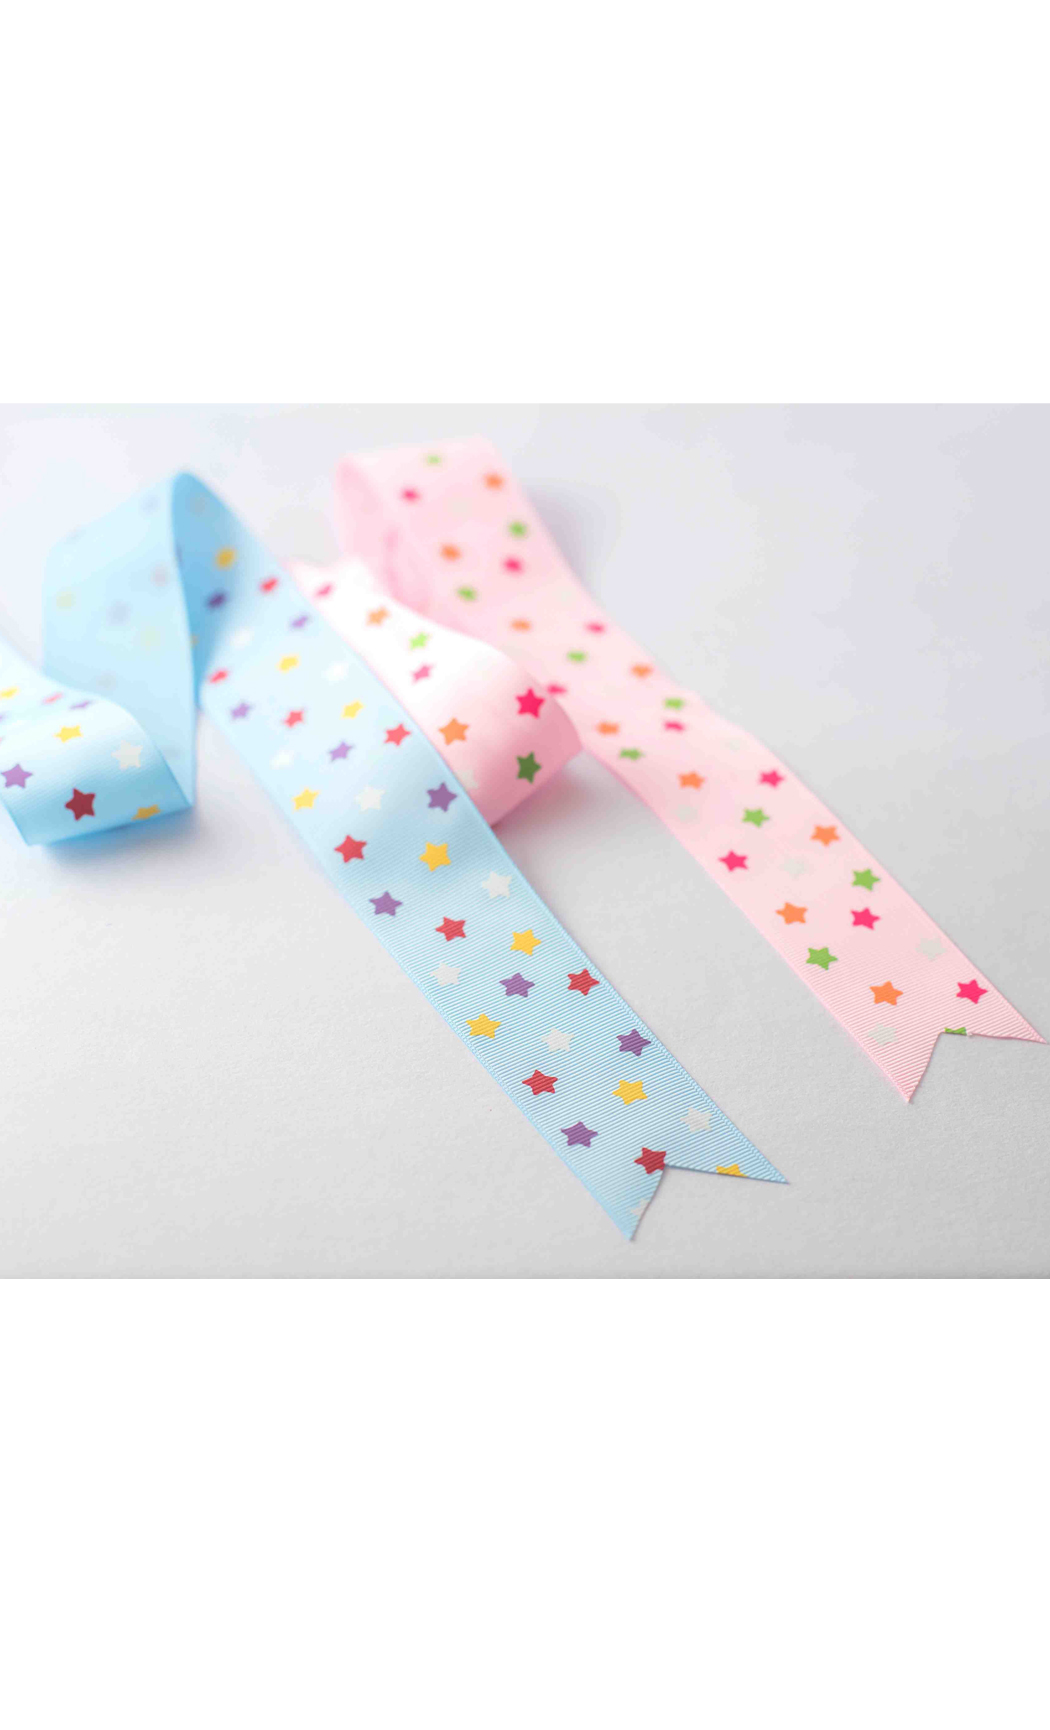 Blue Ribbon with Multicolored Stars - Buy Online